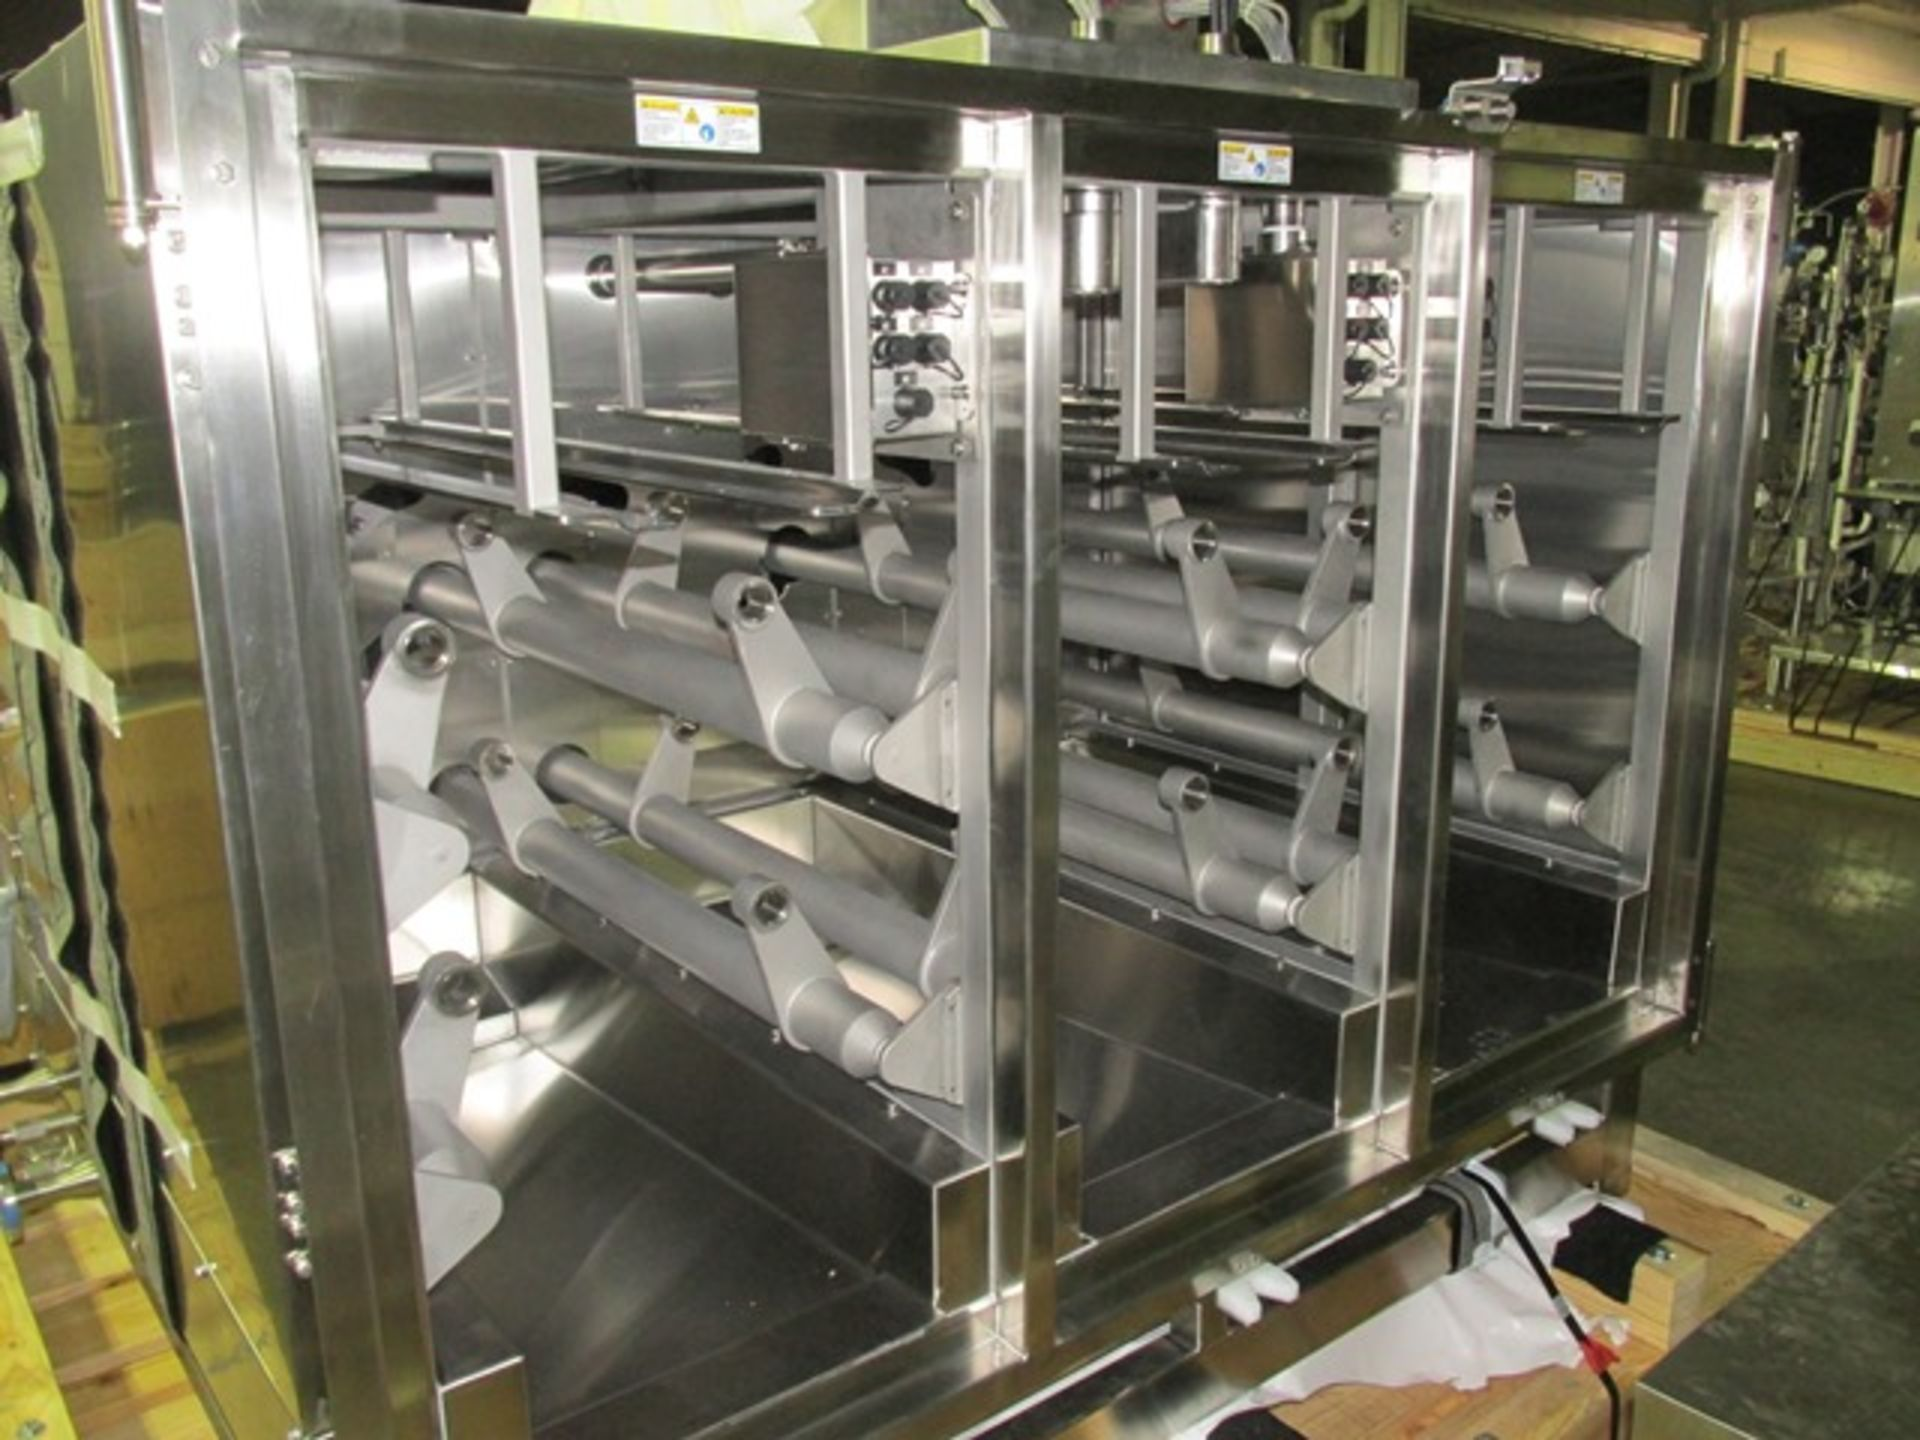 Lot 99 - Sartorius Stedim modular freeze thaw system, model CELSIUS FT100, stainless steel construction